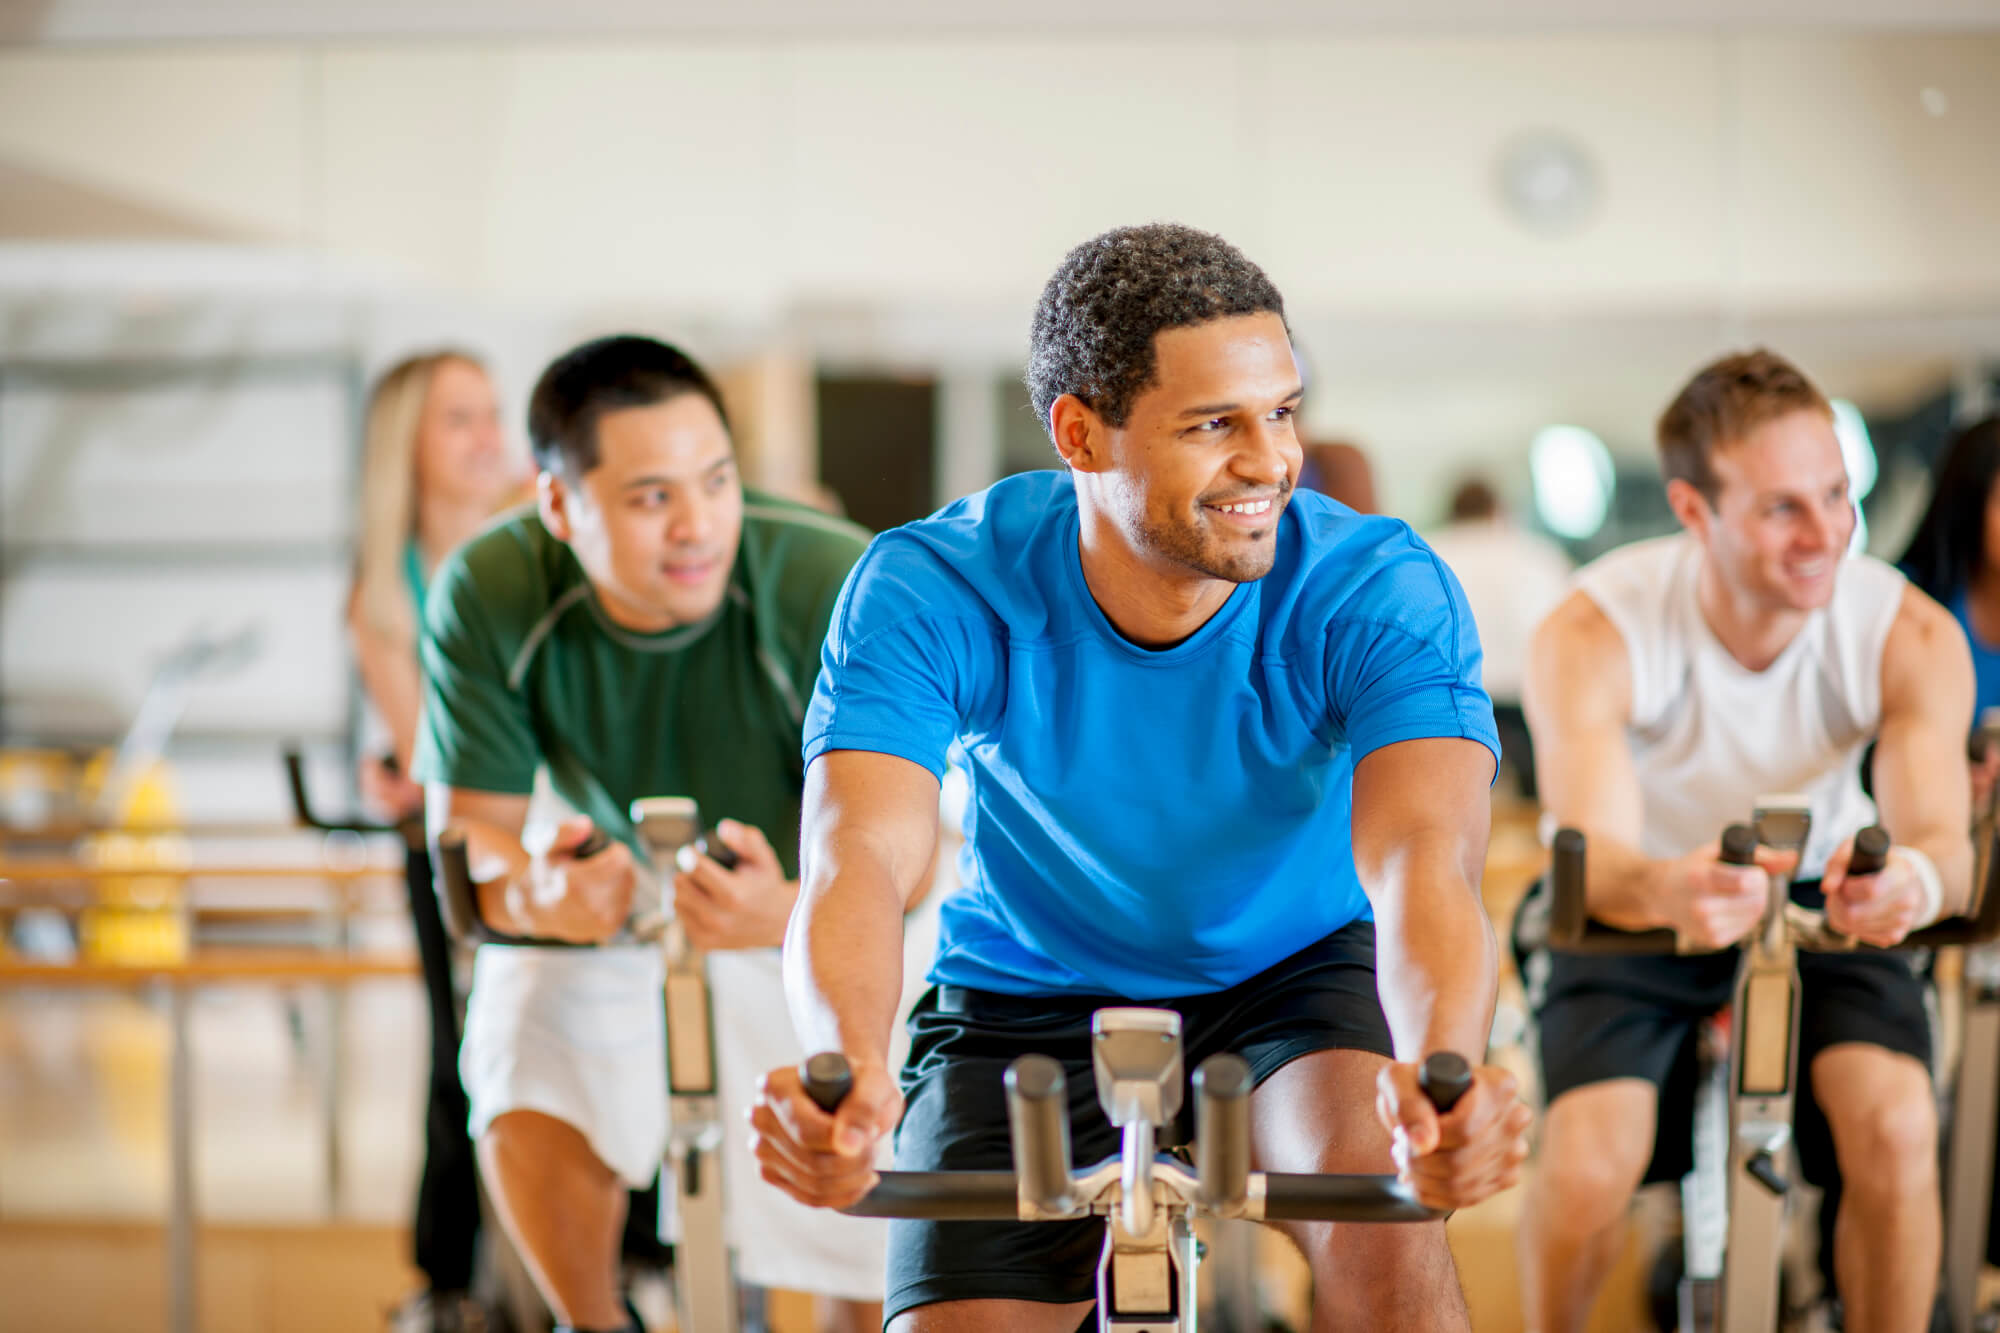 A multi-ethnic group of young adults are working out at the gym by taking a cycling spin class.